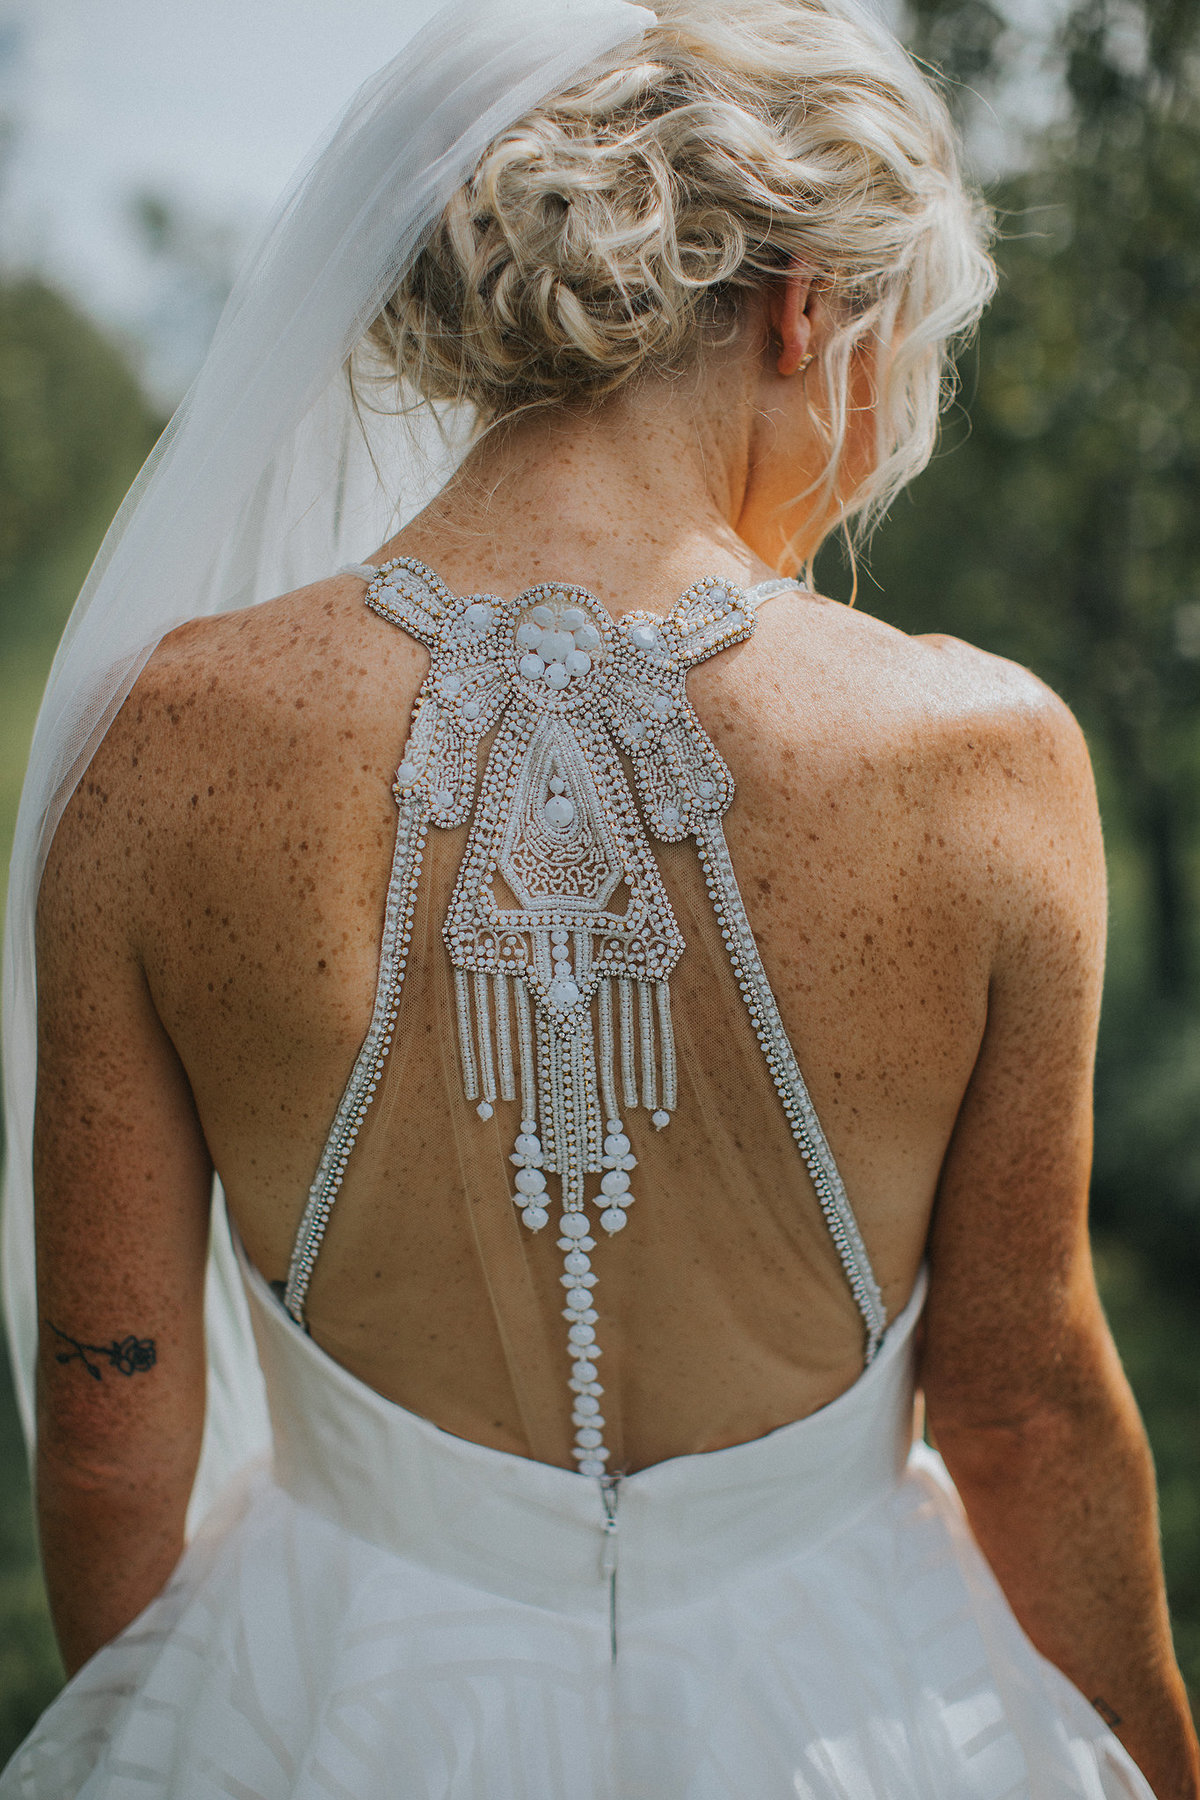 back of brides very detailed dress